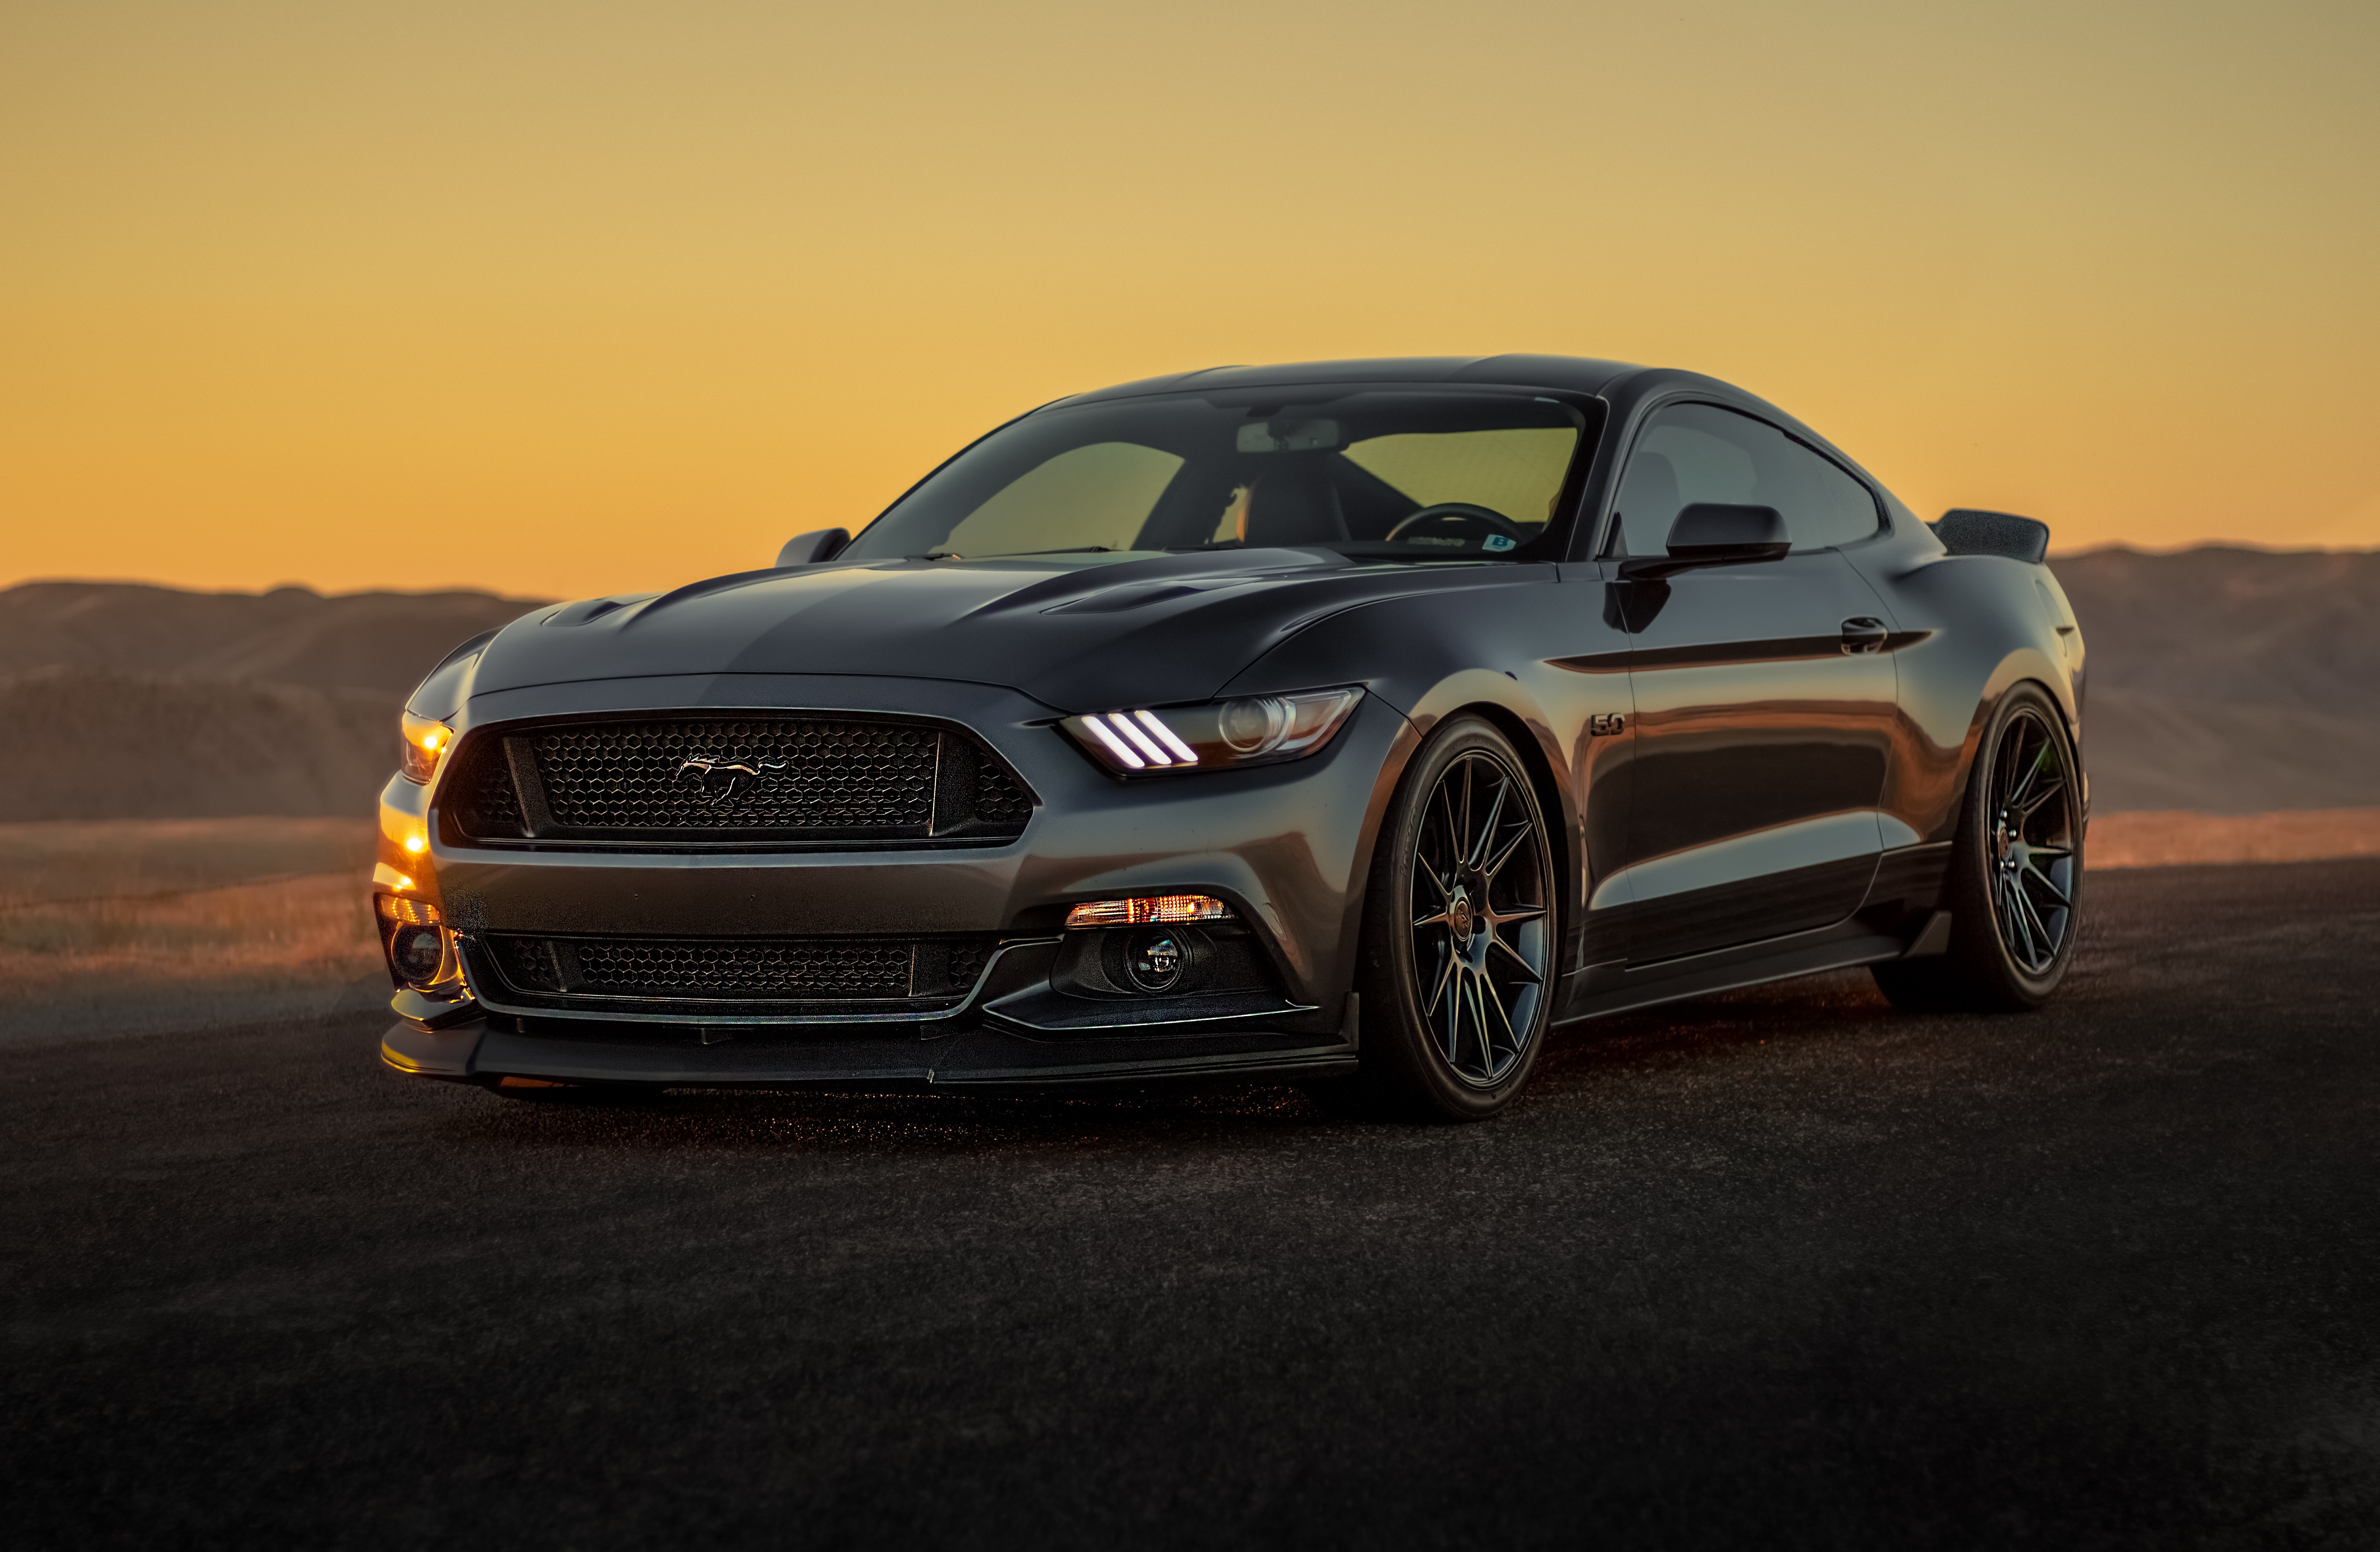 Black Ford Mustang 2019 5k, HD Cars, 4k Wallpapers, Images ...